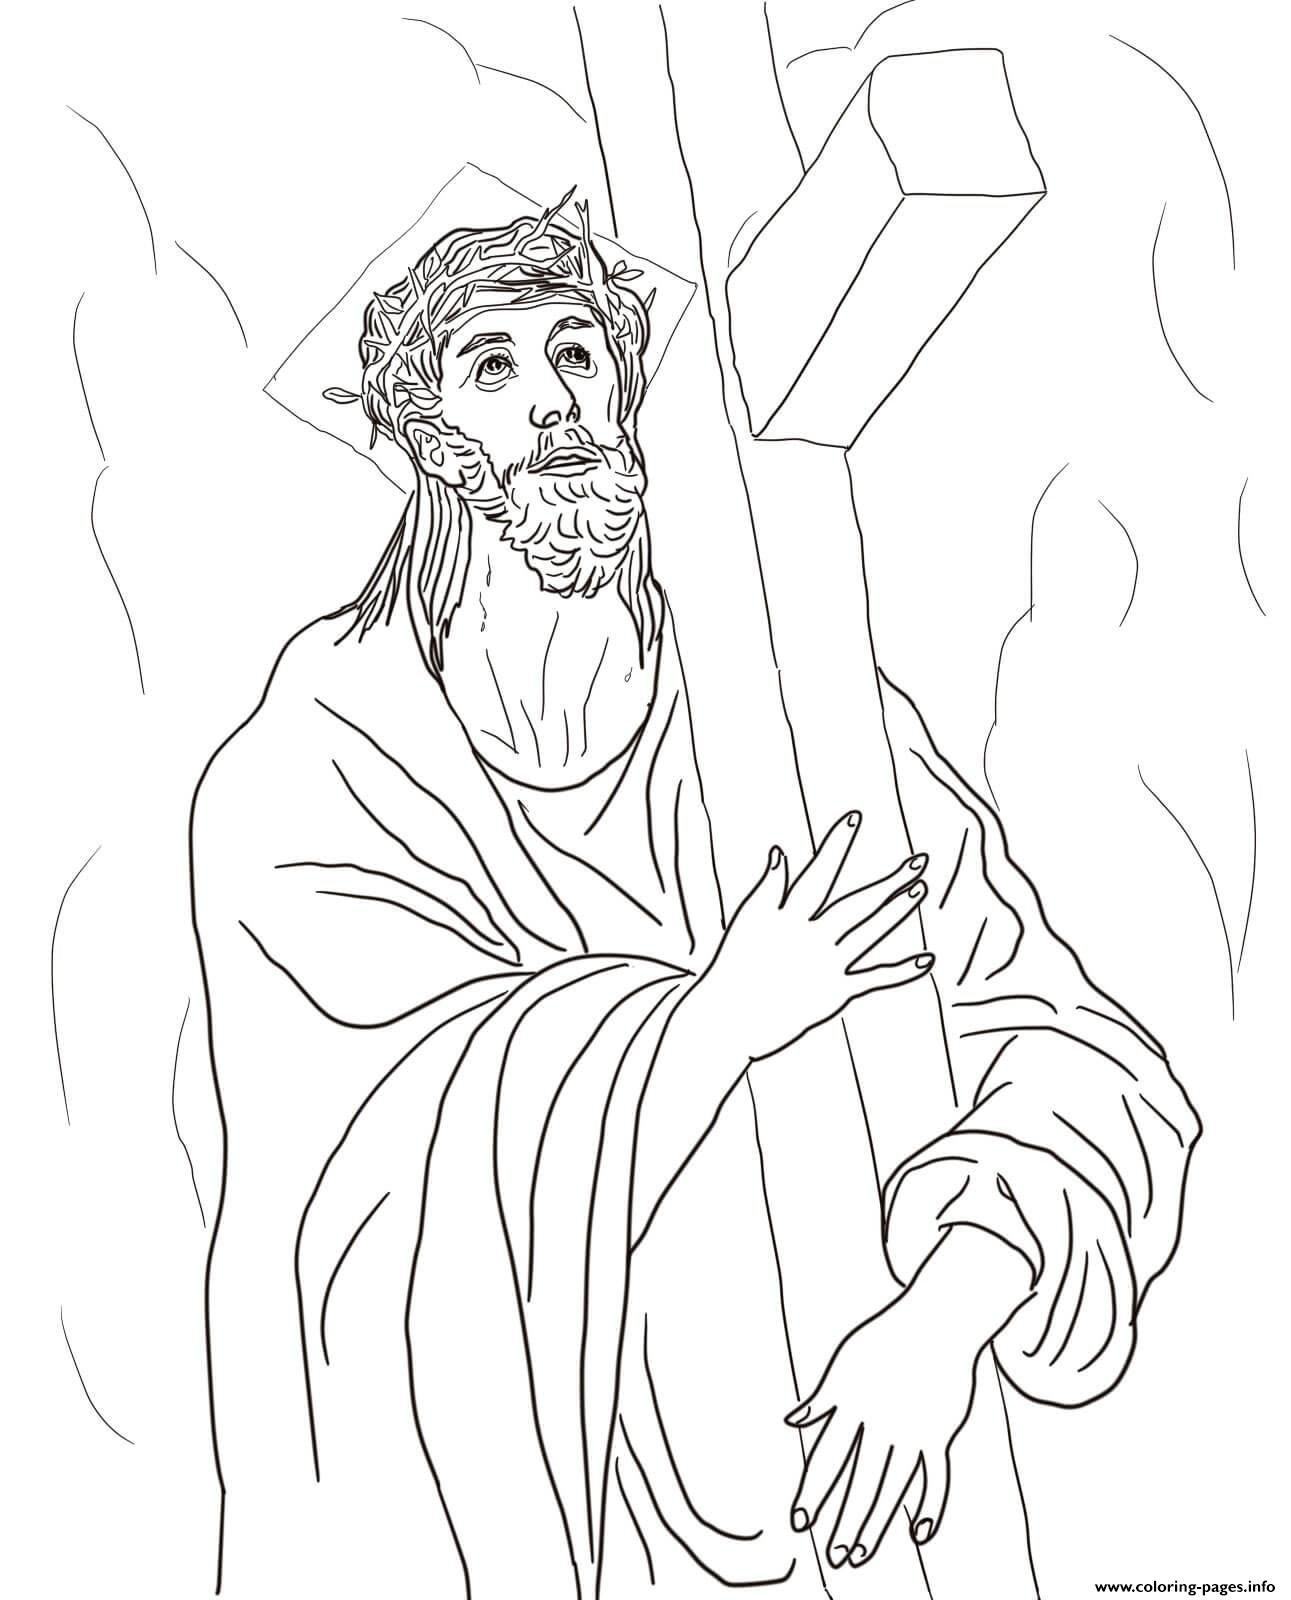 Good Friday 2 Second Station Jesus Carries His Cross By El Greco Coloring Pages